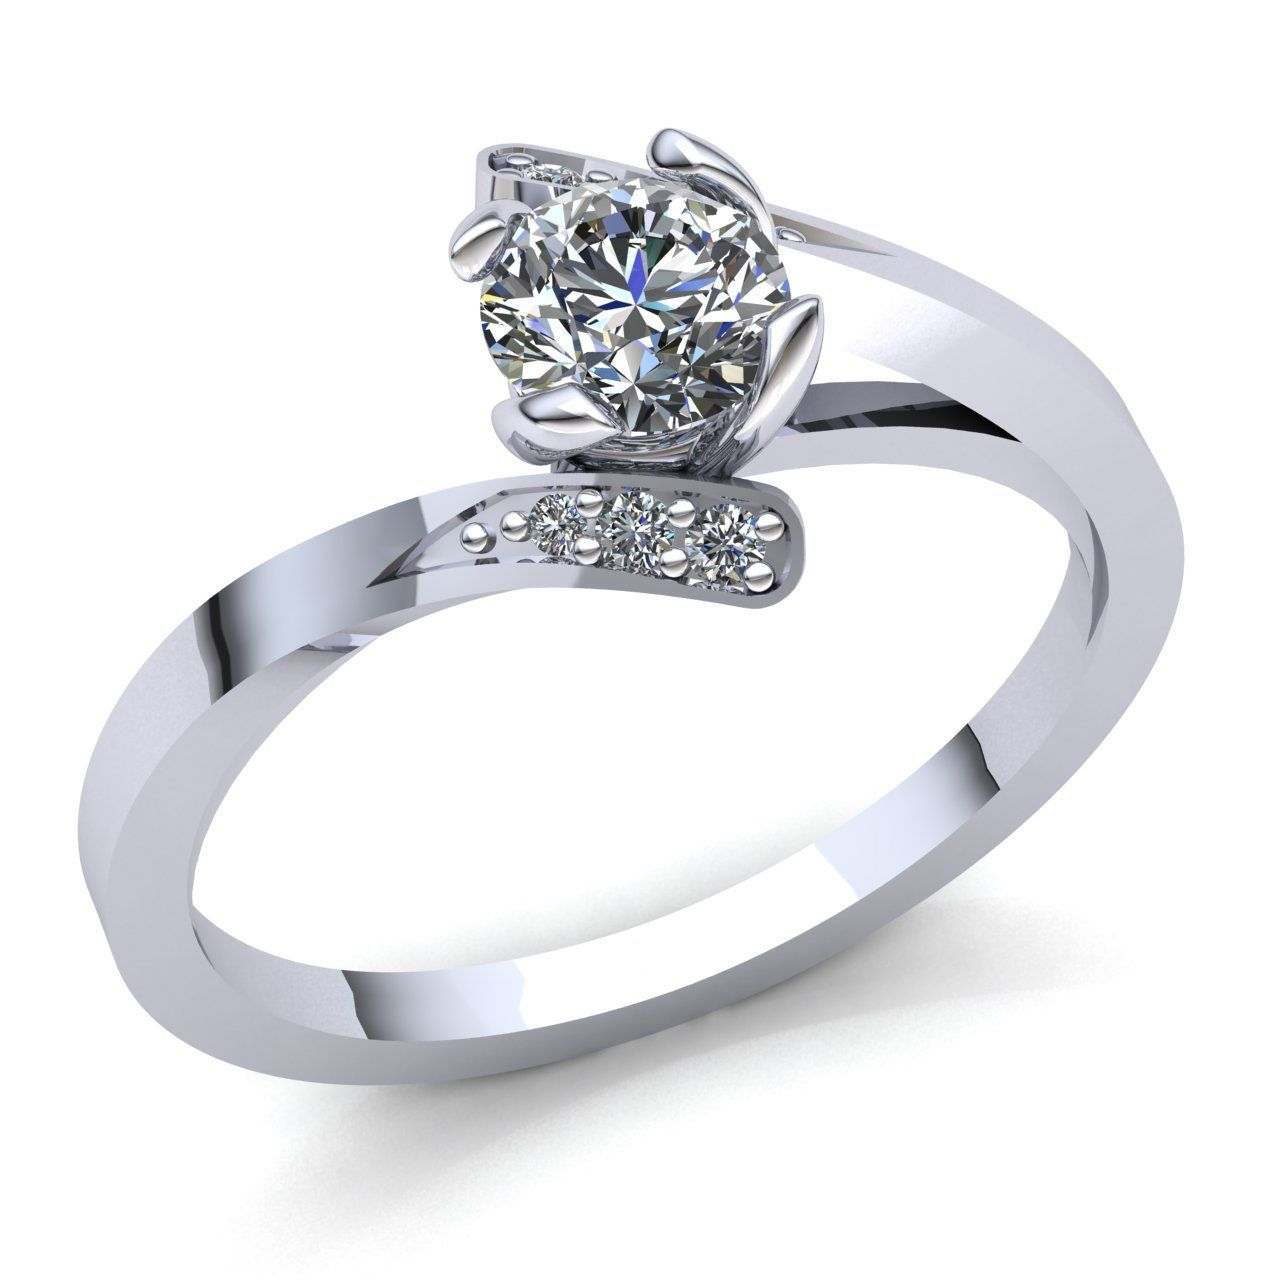 Forever One Moissanite Wedding Ring Set with 0.38ct Accent Diamonds on Side and 0.43ct Real Diamonds Matching Band Engagement Ring Set